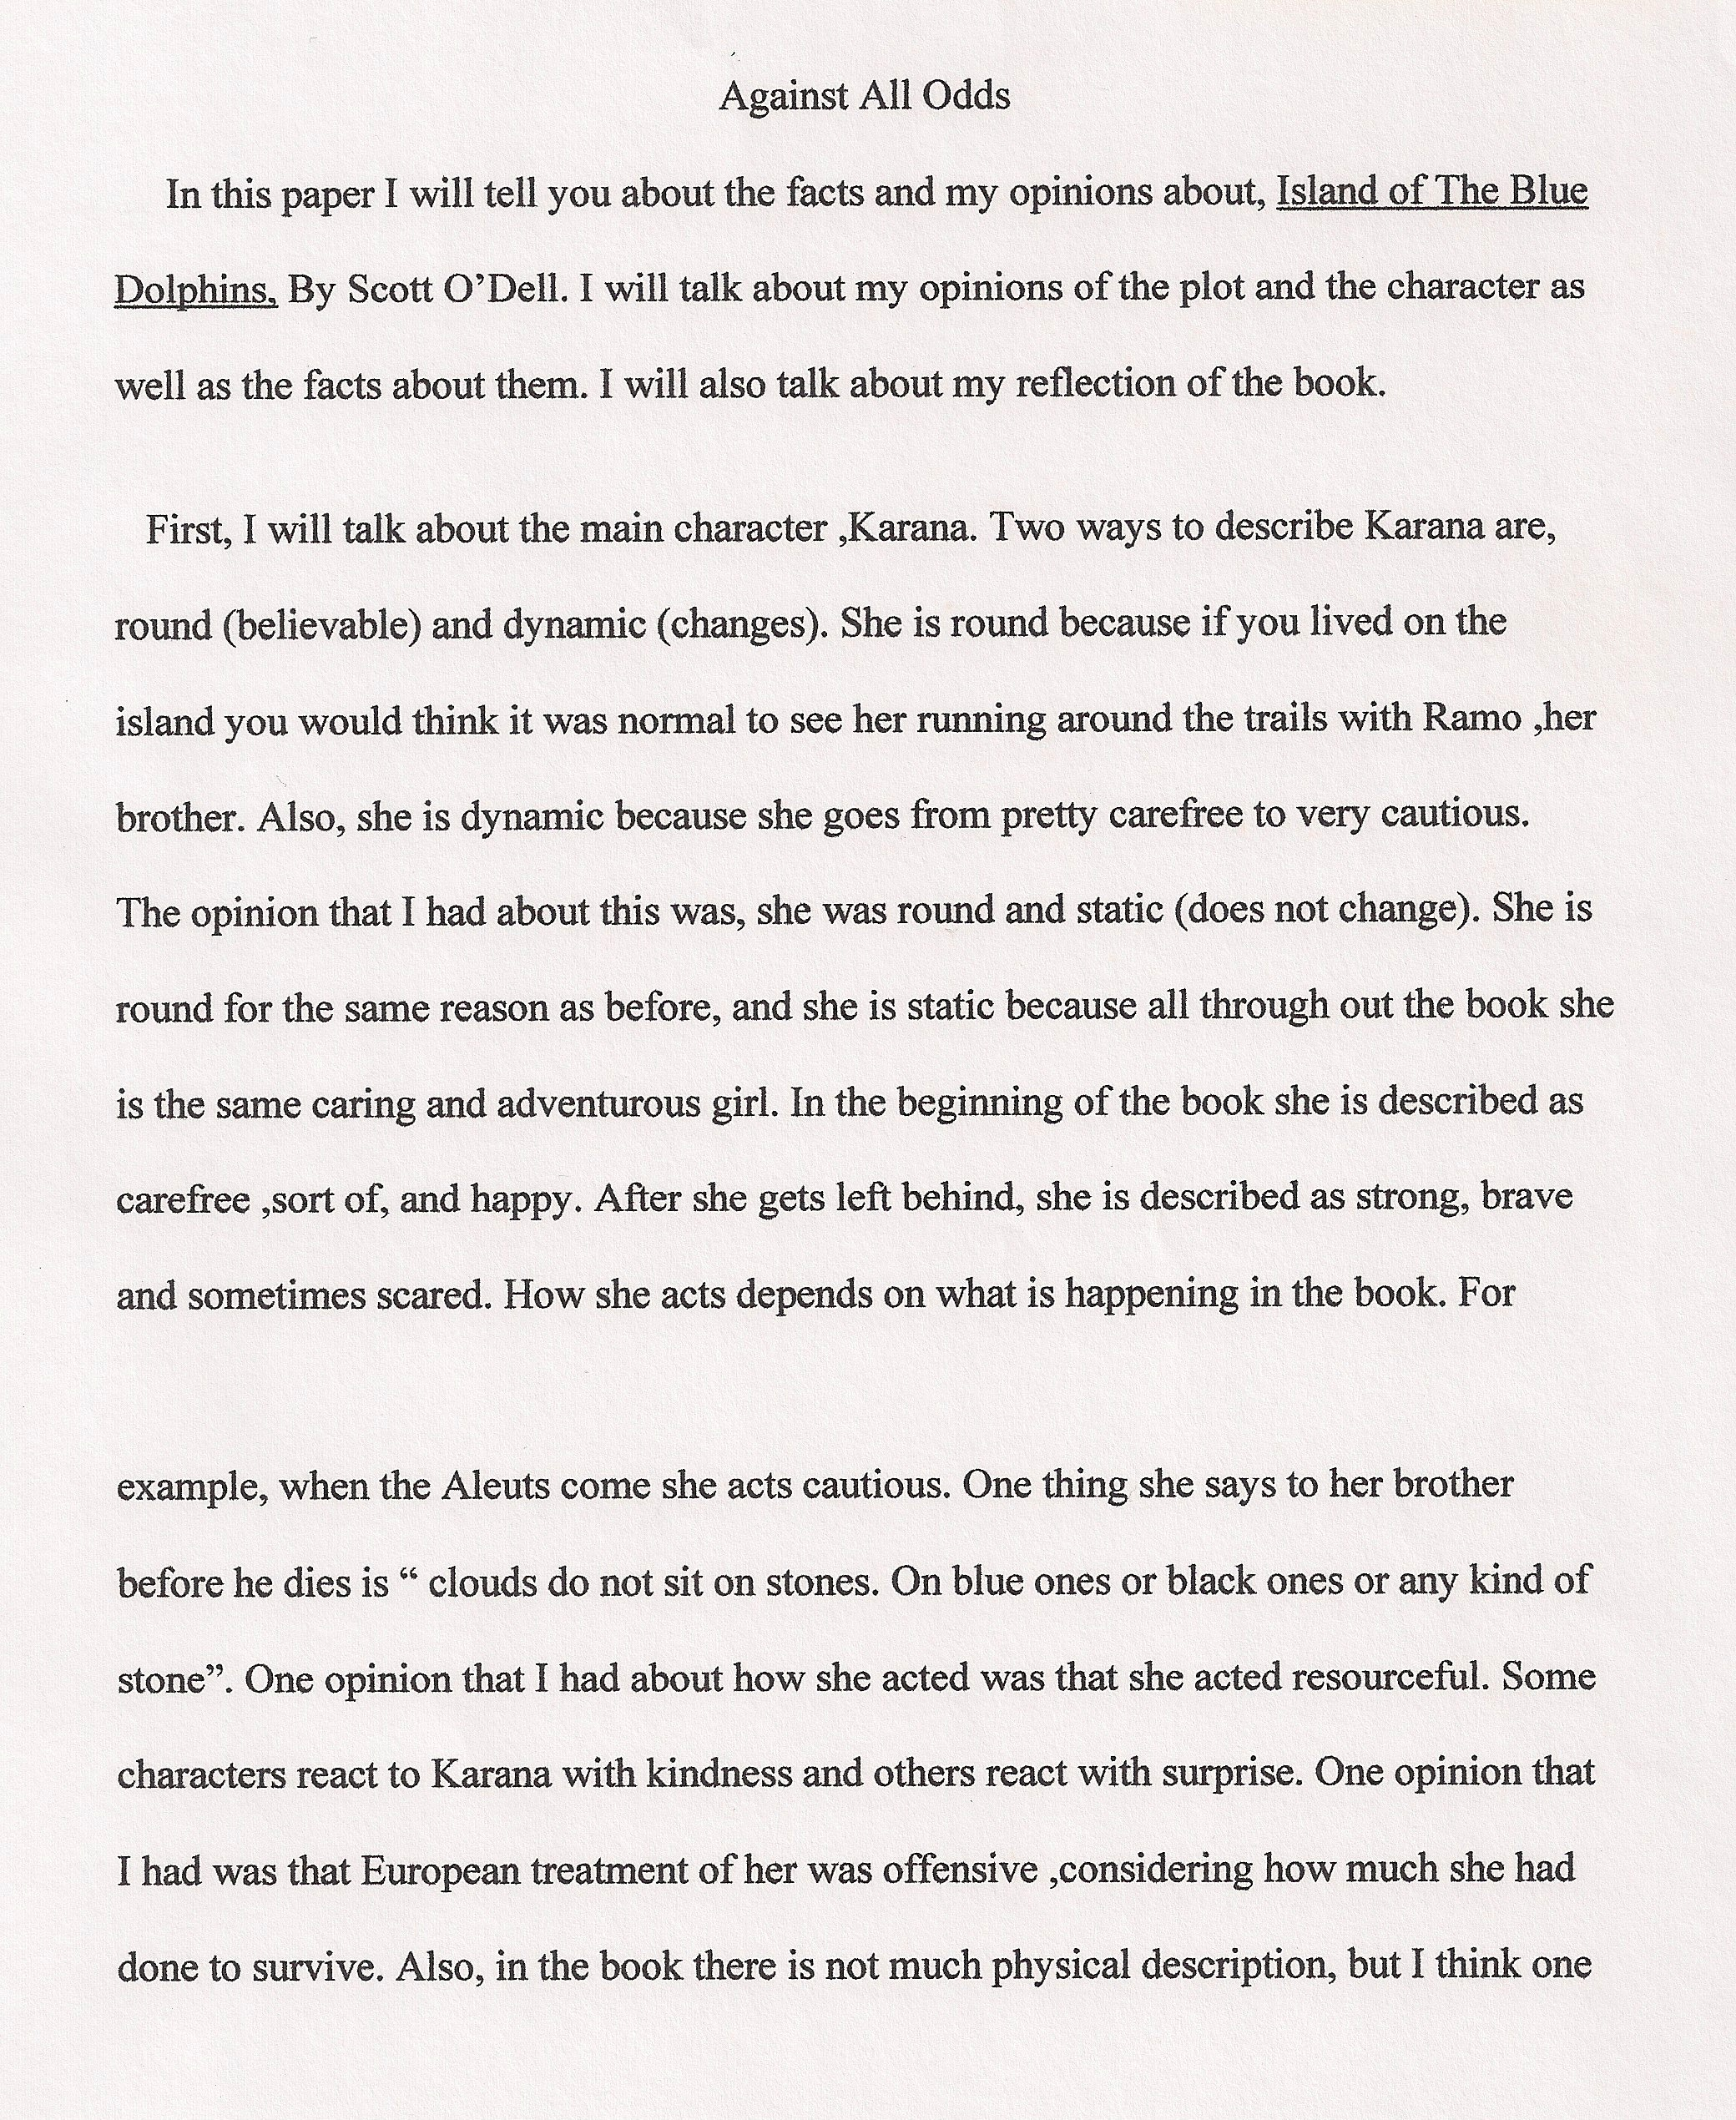 011 Persuasive Essay Writing For 5th Grade Example Week Against All Odds Merifully Samples L Impressive Essays Written By Fifth Graders A Prompts Full